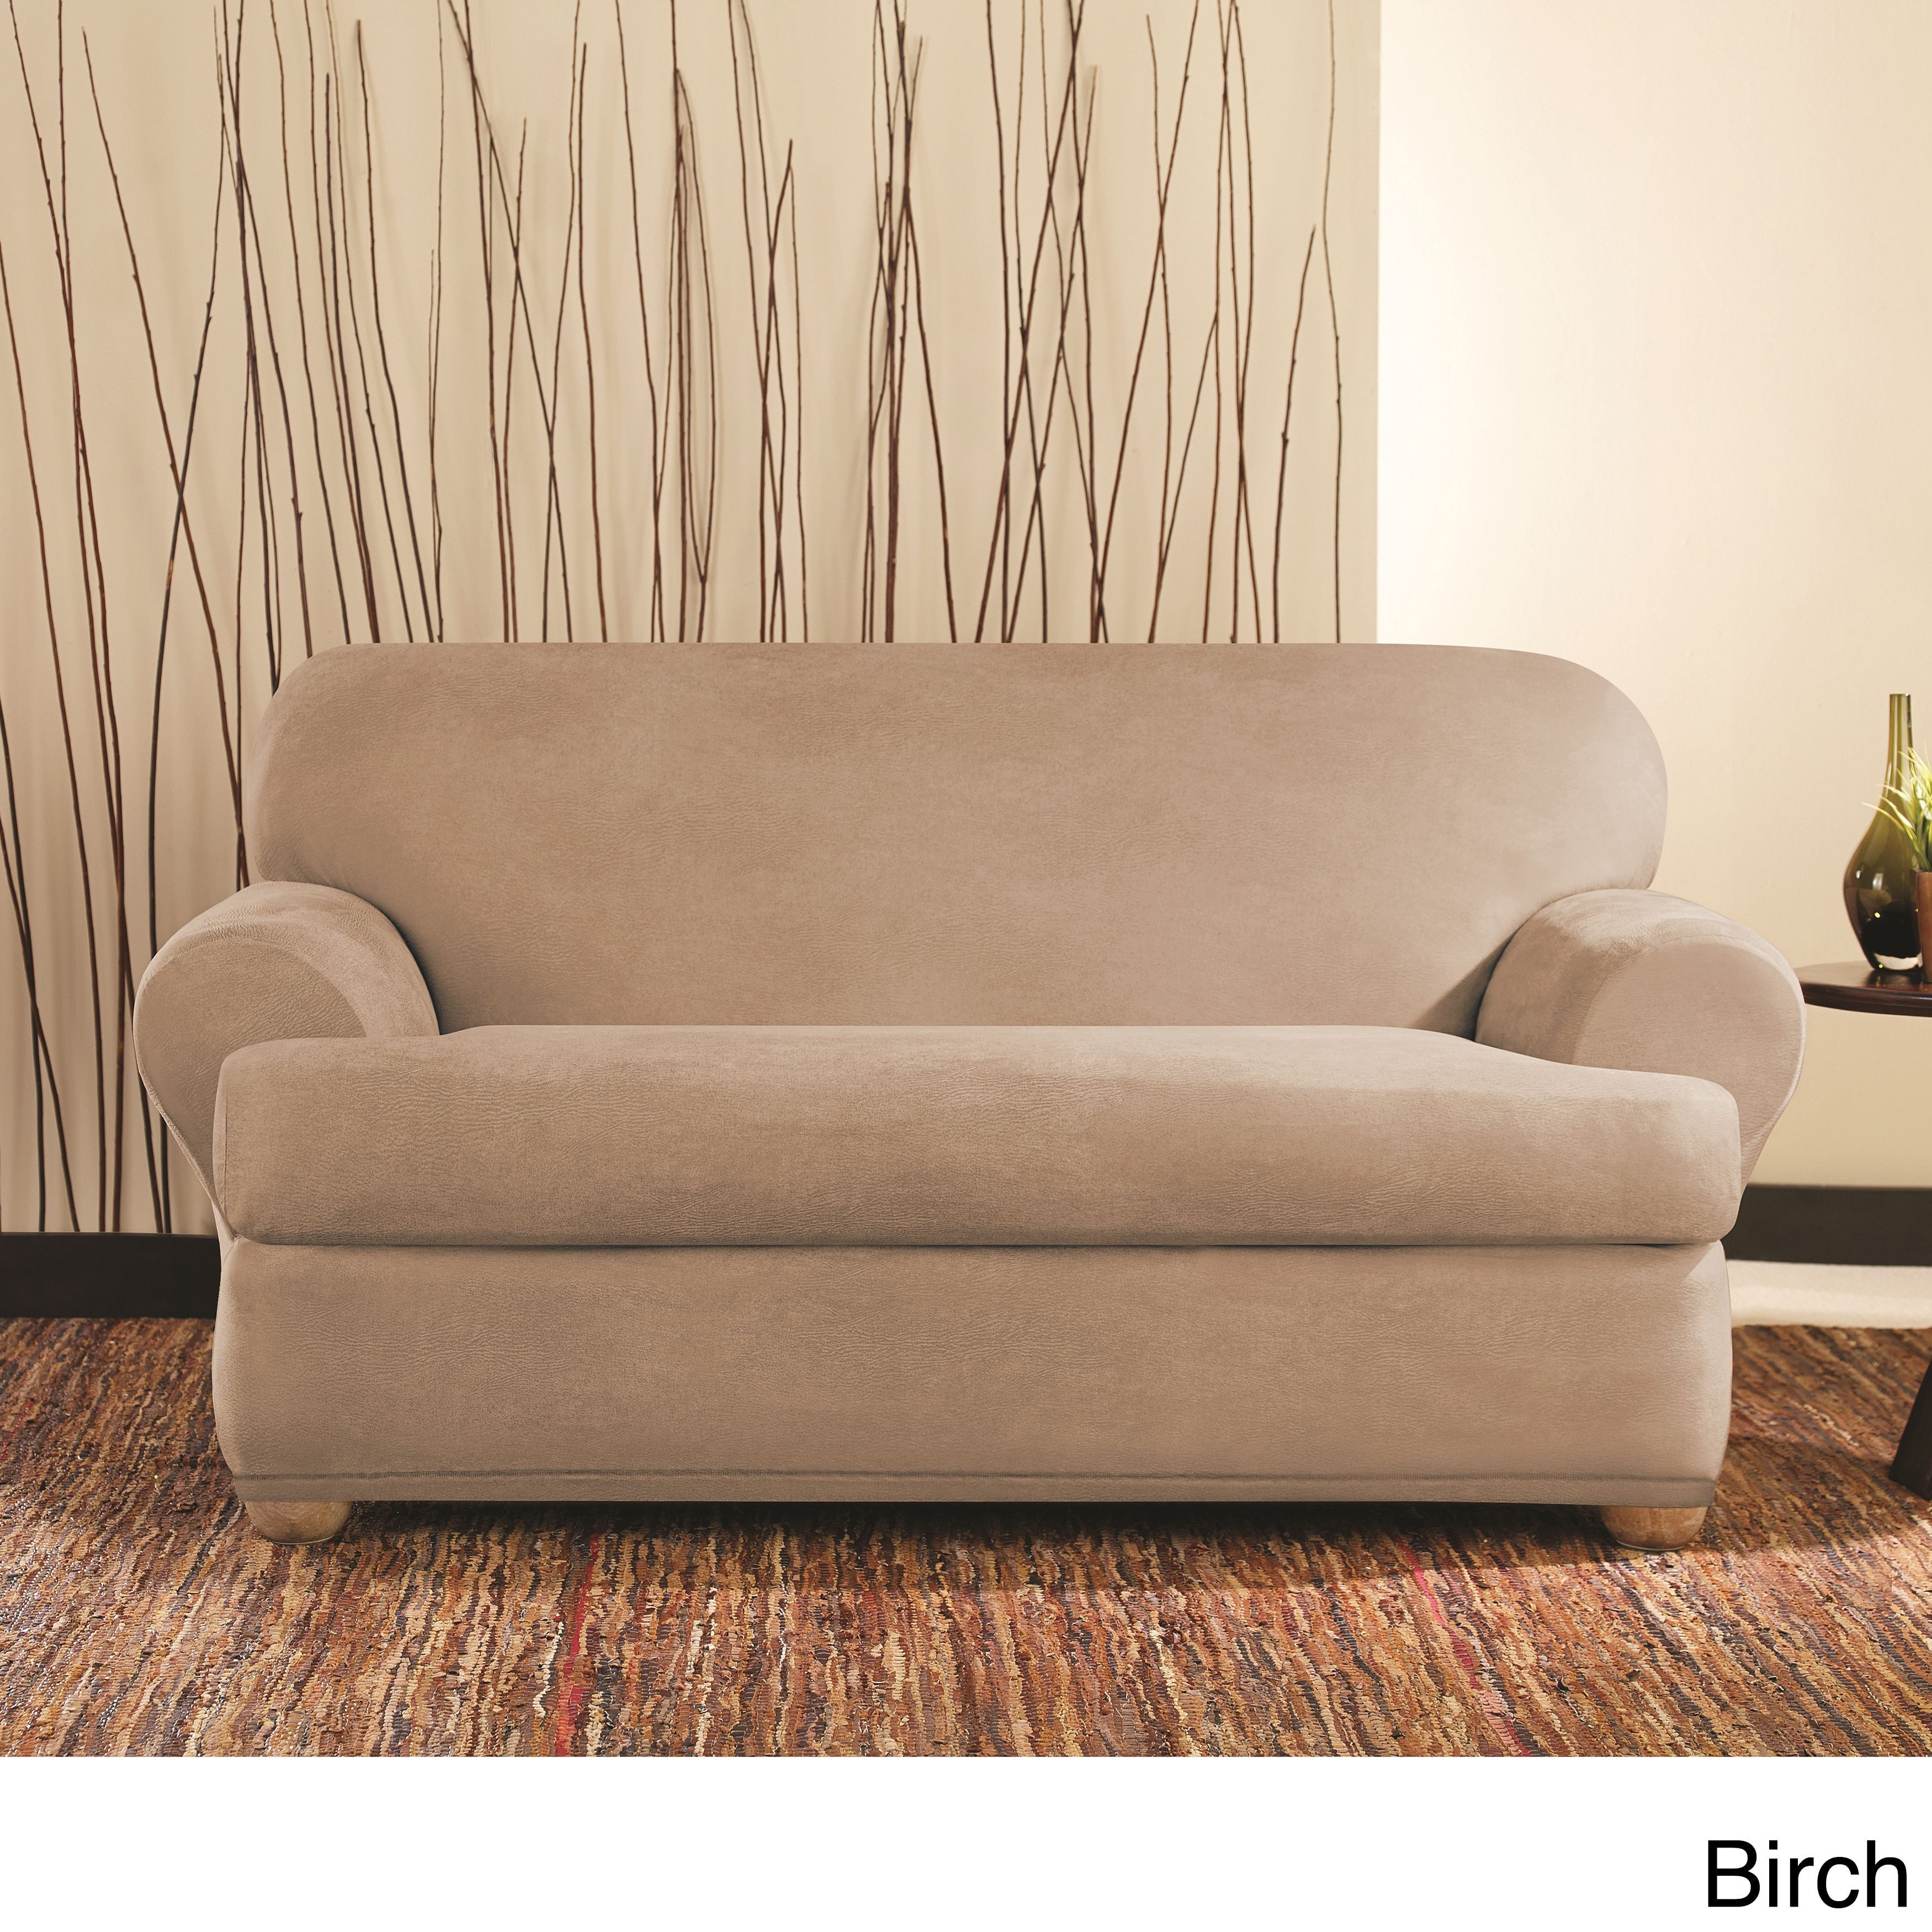 SureFit Vintage Leather Reversible Furniture Cover Loveseat Birch NEW in pack